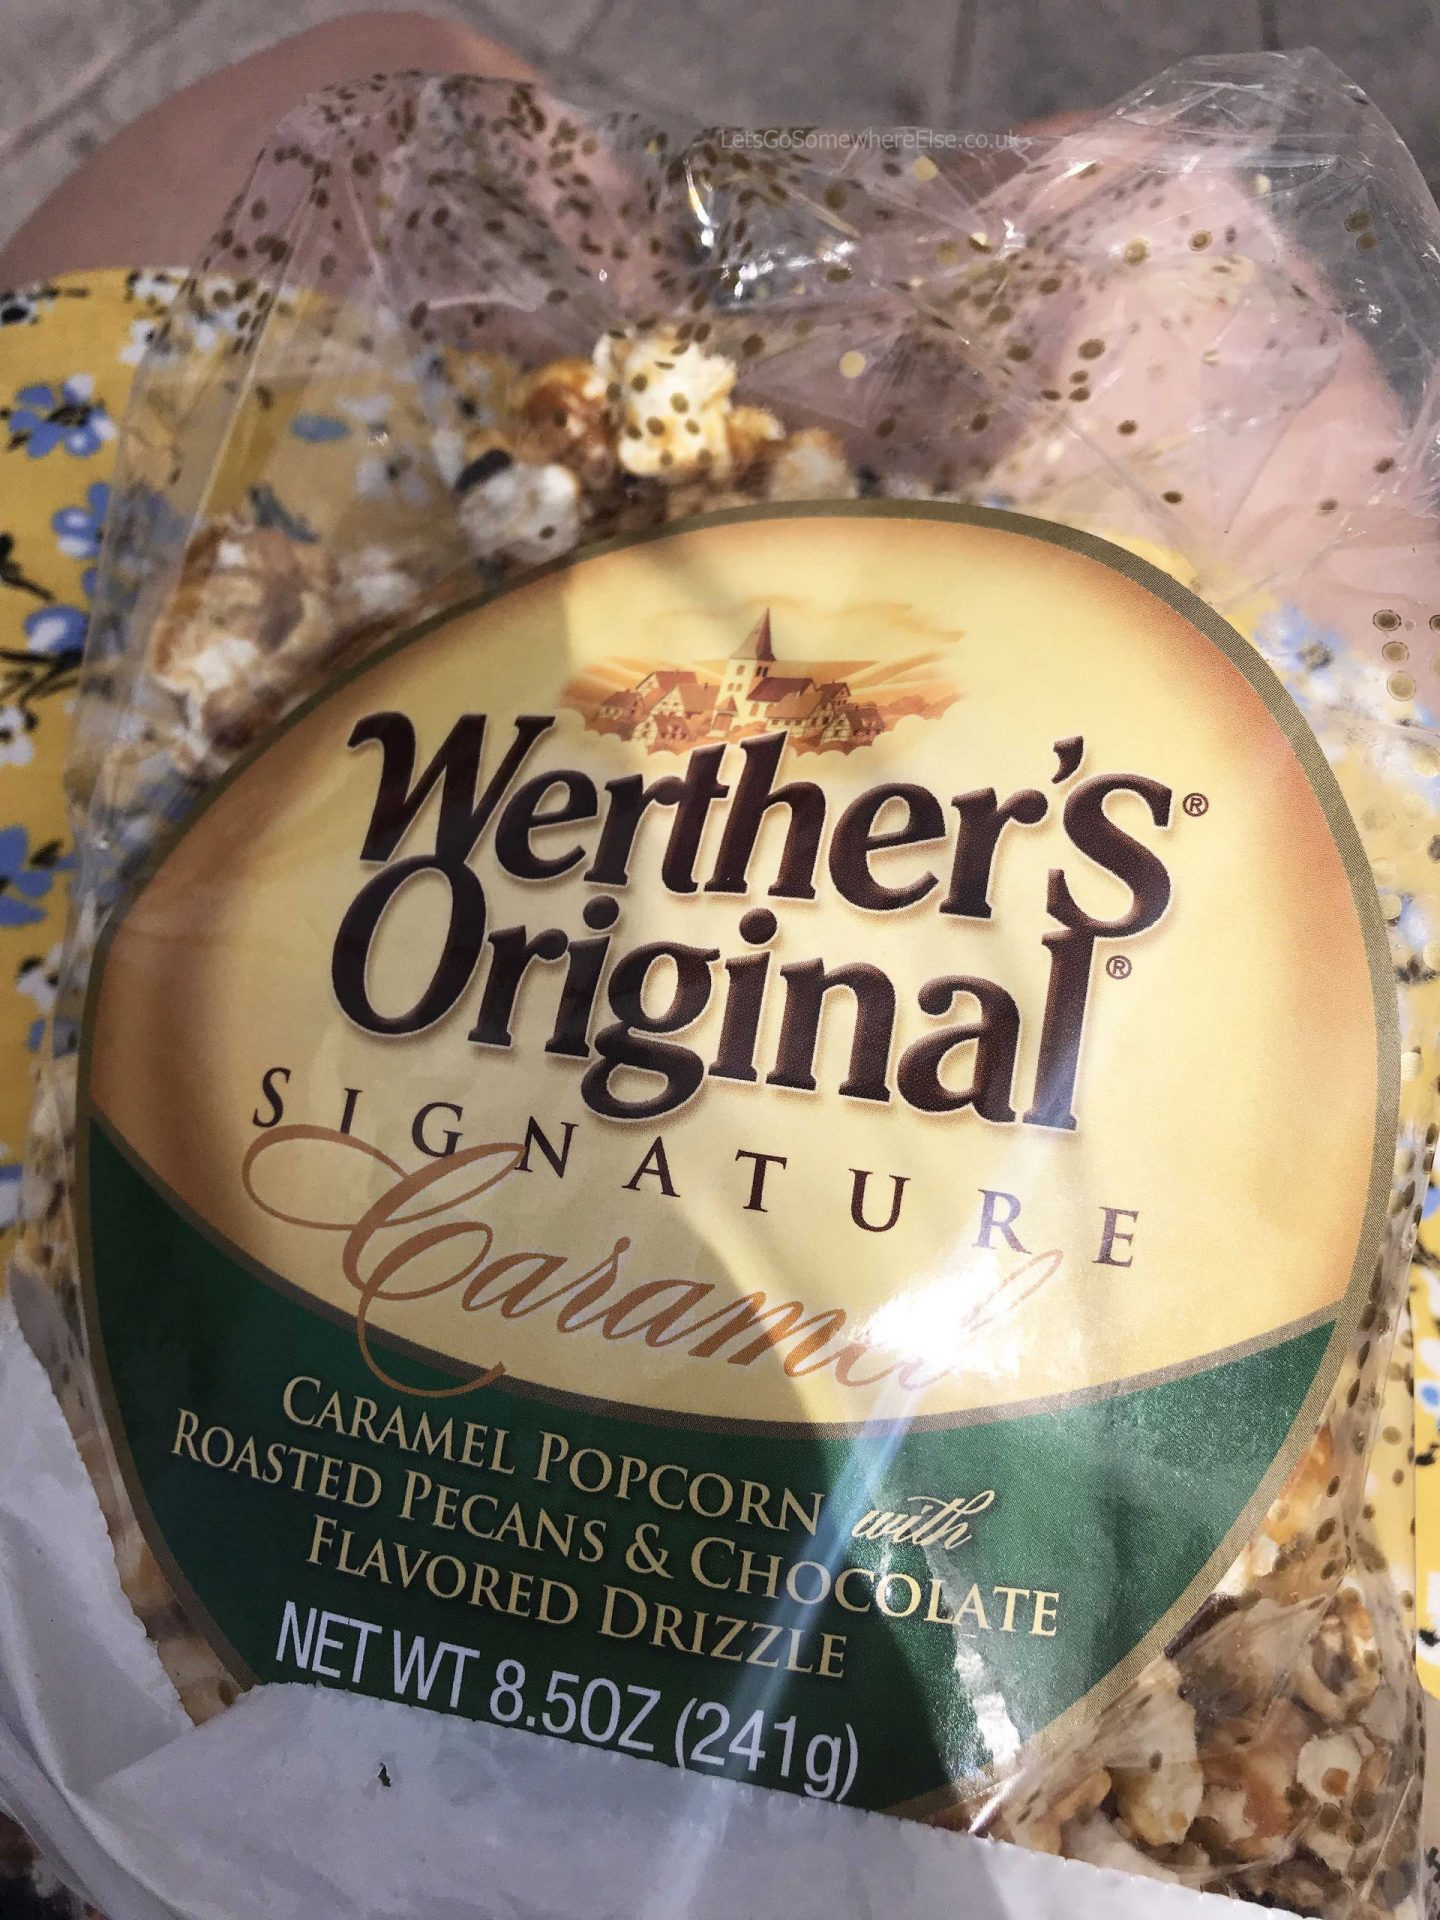 Werther's Original Shop Epcot Disney Snack